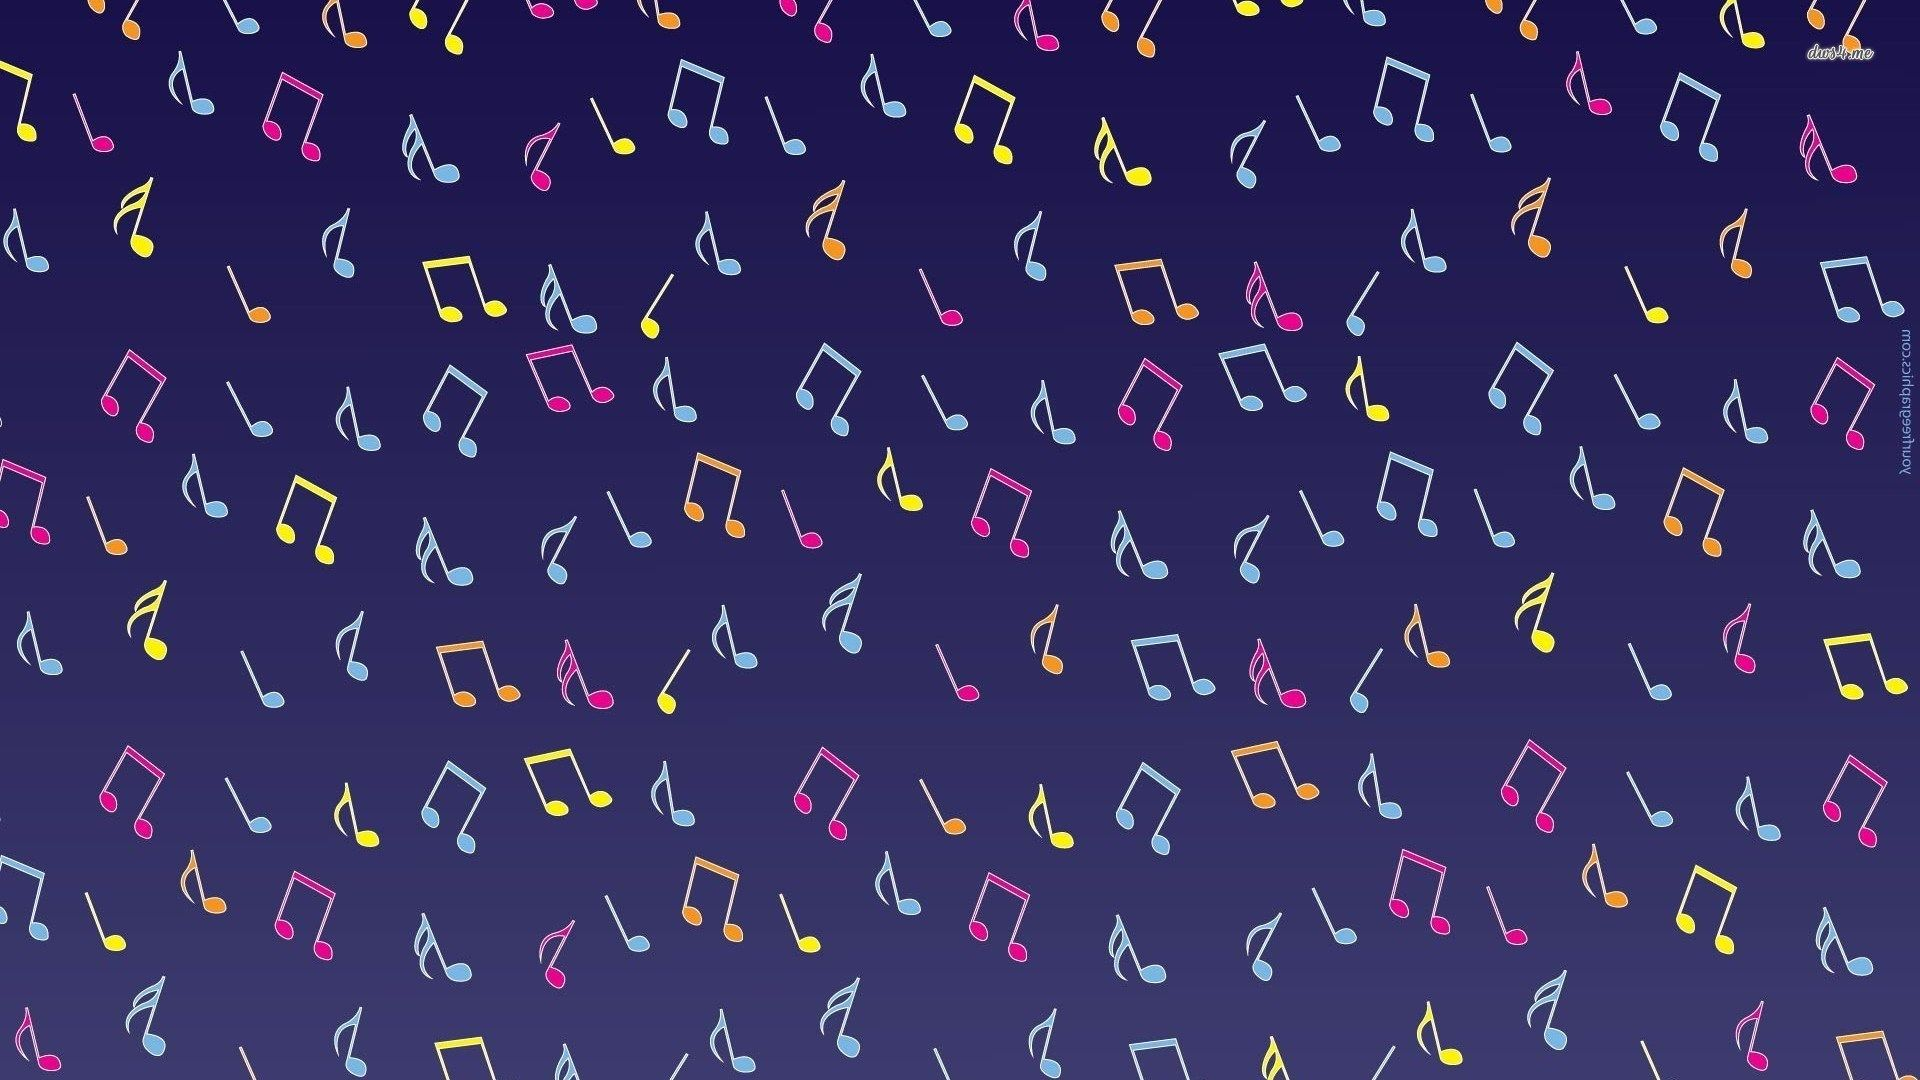 music notes wallpaper hd backgrounds images, 1920 x 1080 (254 kB)